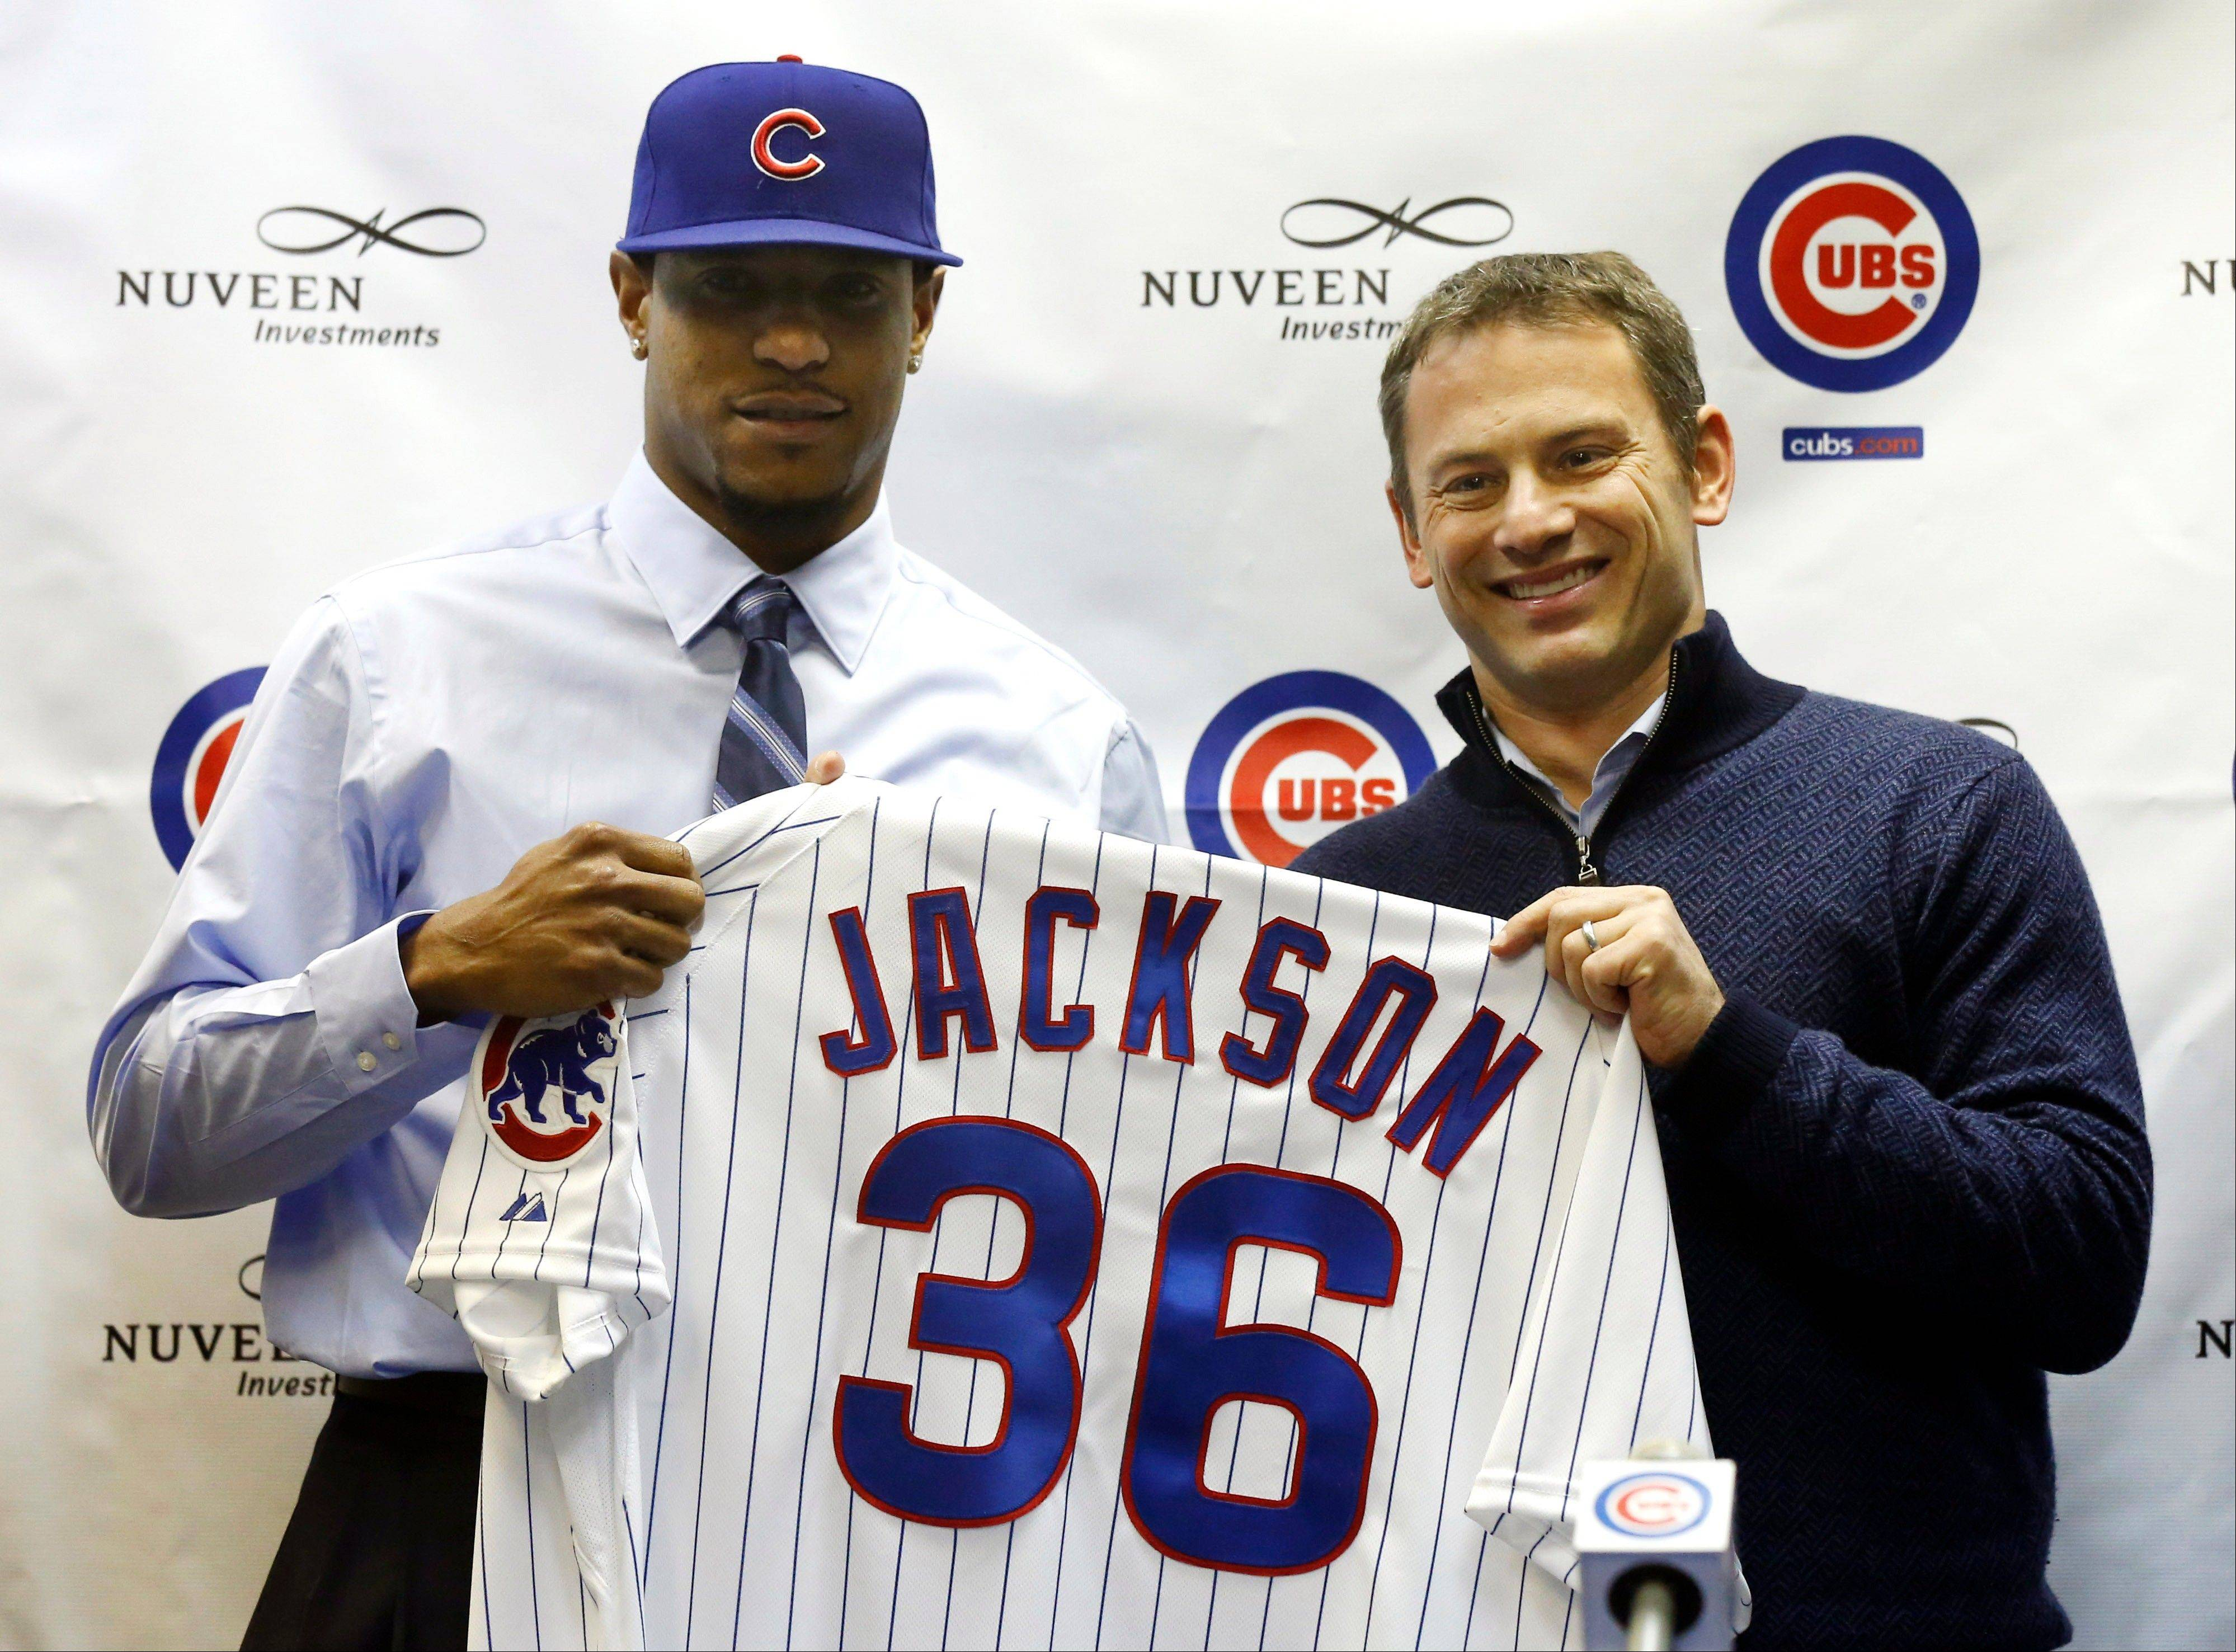 Cubs general manager Jed Hoyer, right, poses with Edwin Jackson on Jan. 2, 2013.